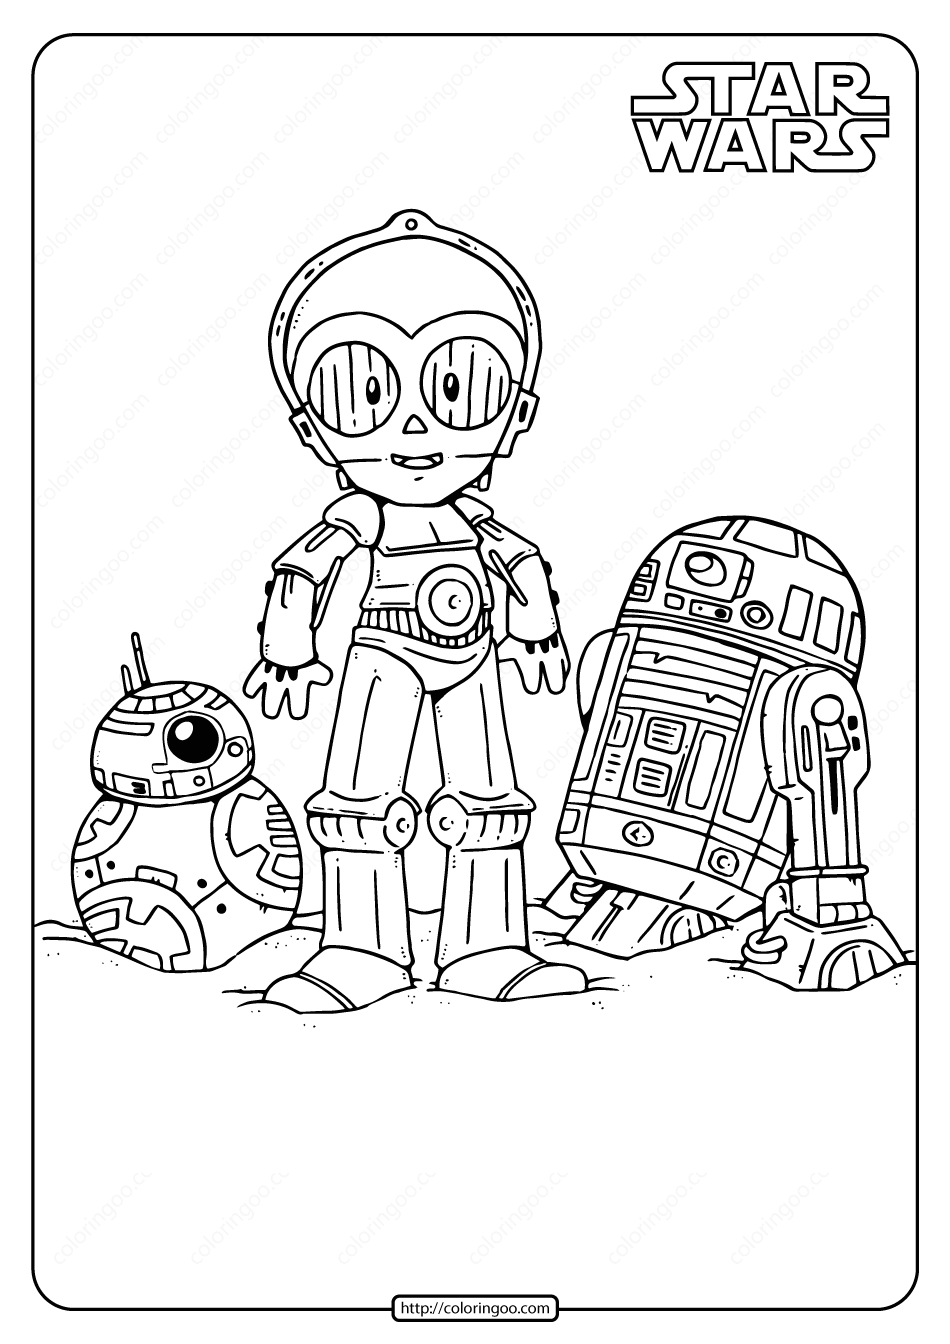 Printable Star Wars Droids Coloring Pages